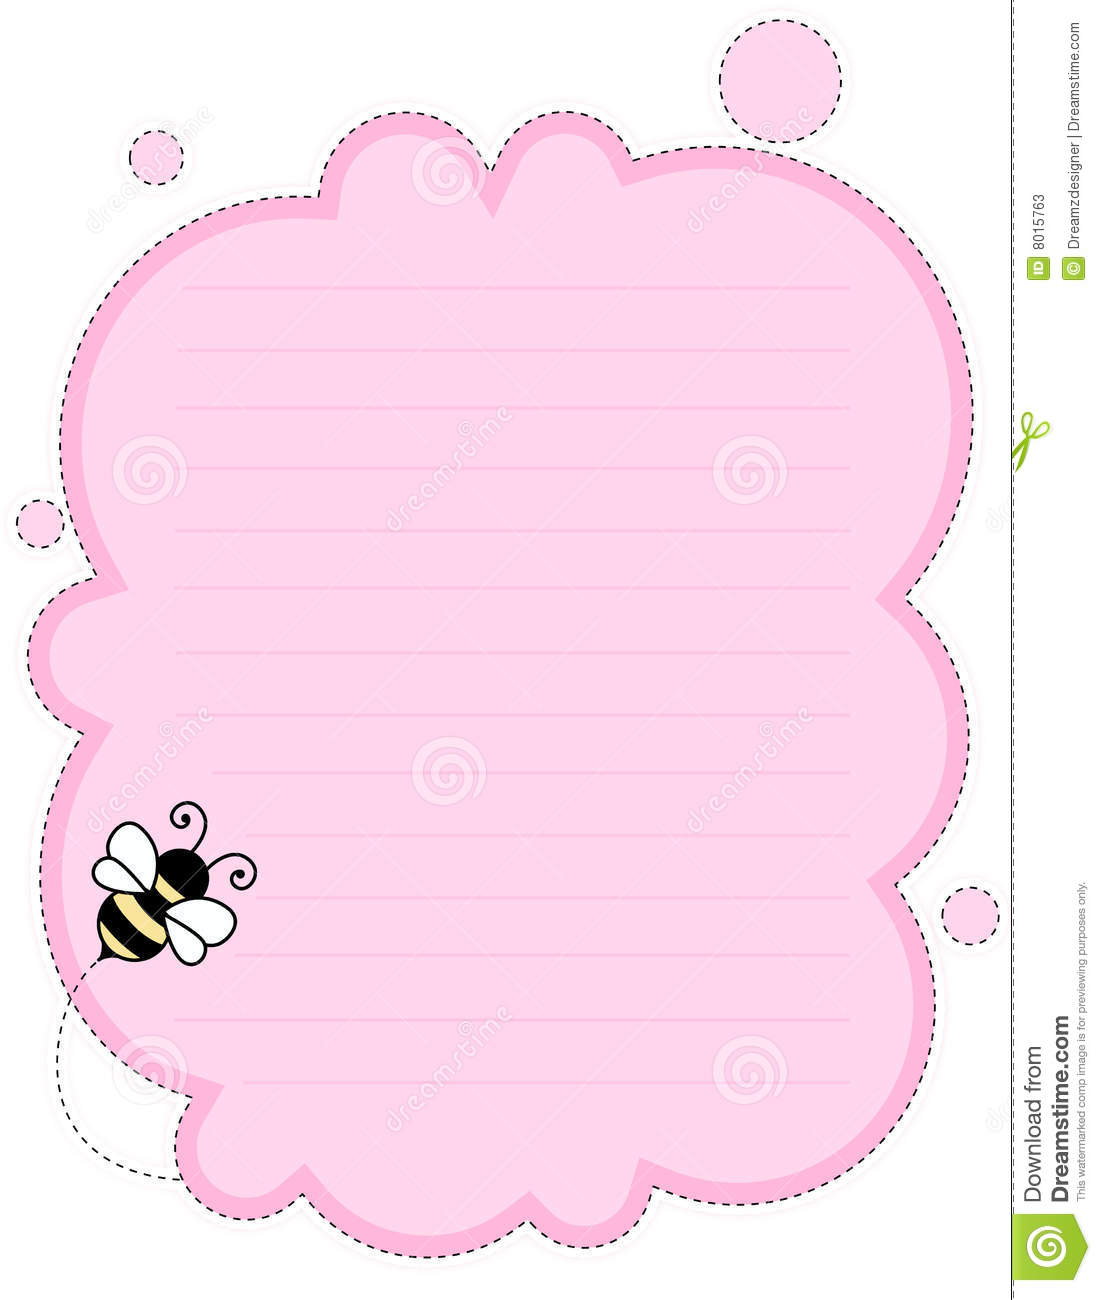 More similar stock images of ` Cute note paper background `